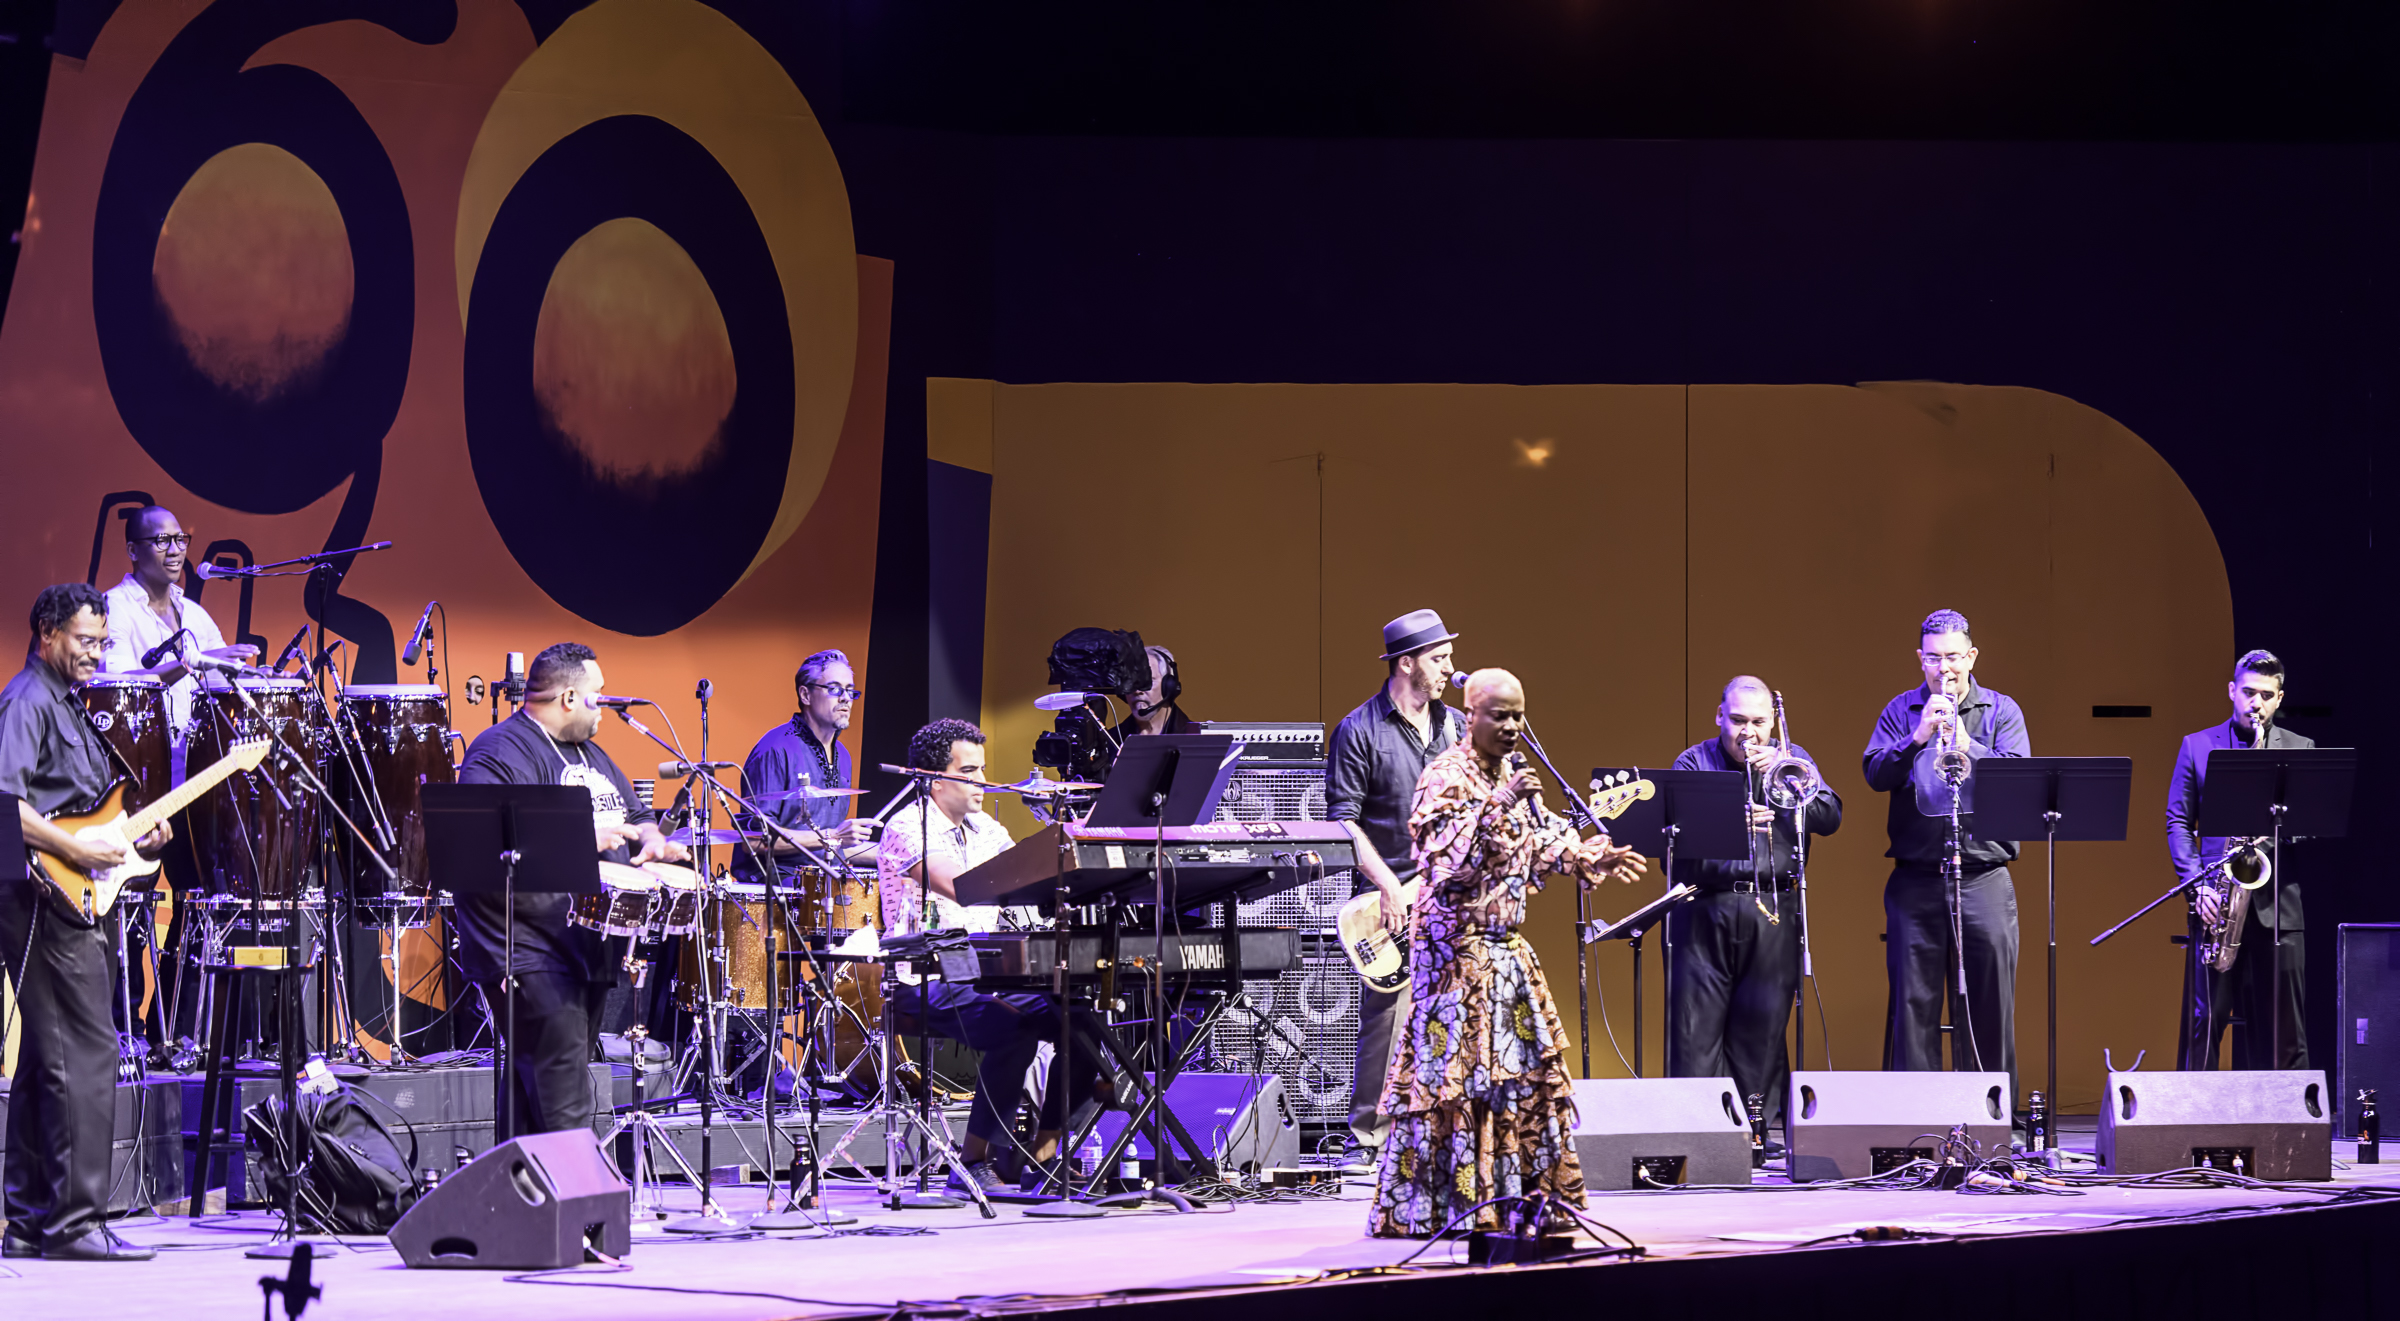 Dominic James, Jhair Sala, Edgardo Yaya Serka, Edgar Pantoja, Pedrito Martinez, Ben Zwerin, Humberto Ruiz, Brian Beukelman and Fabian Chavez with Angelique Kidjo's Tribute to Salsa at the Monterey Jazz Festival